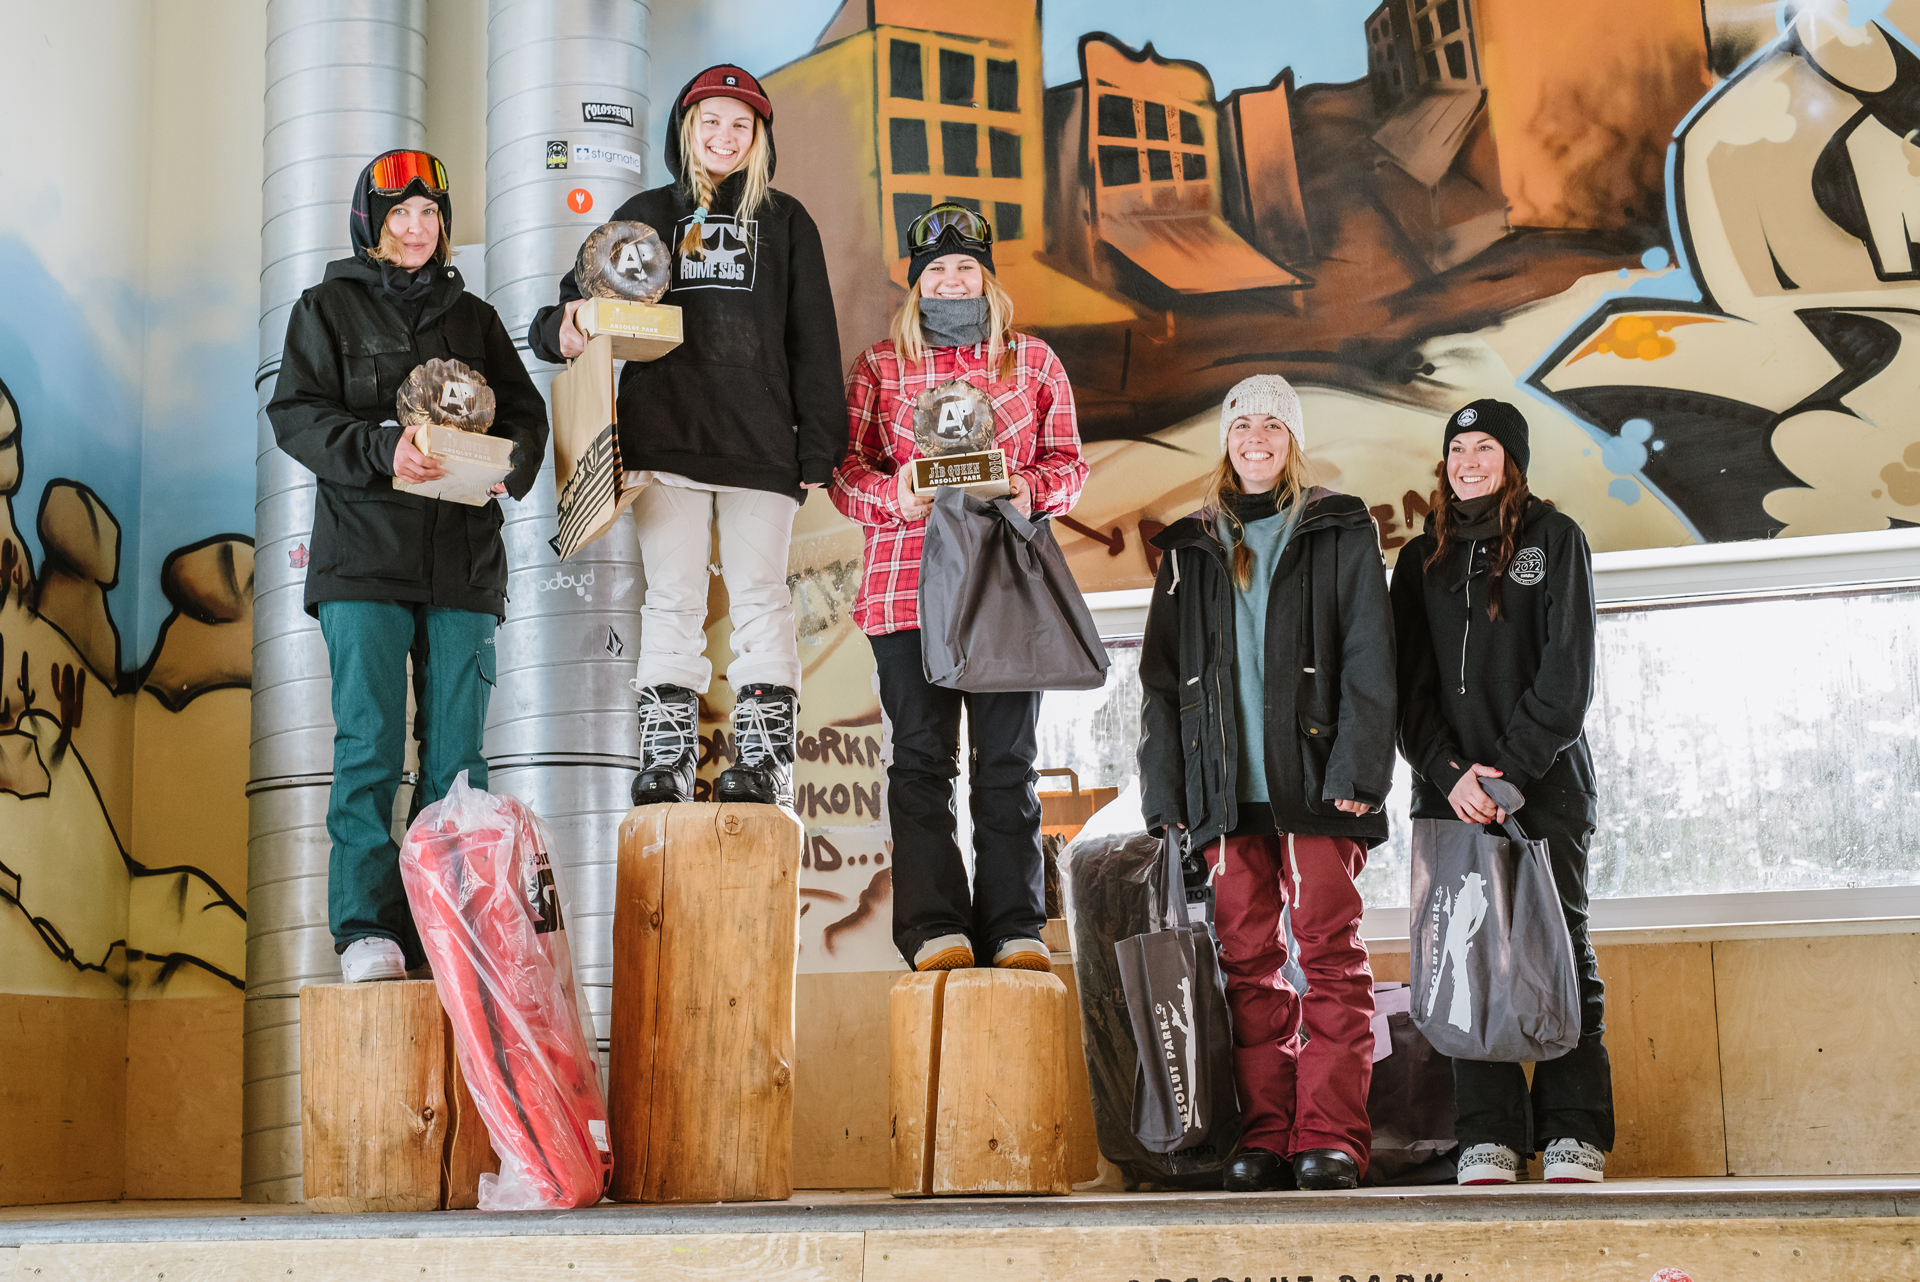 Jib King 2016 - Podium Girls - Foto: Absolut Park